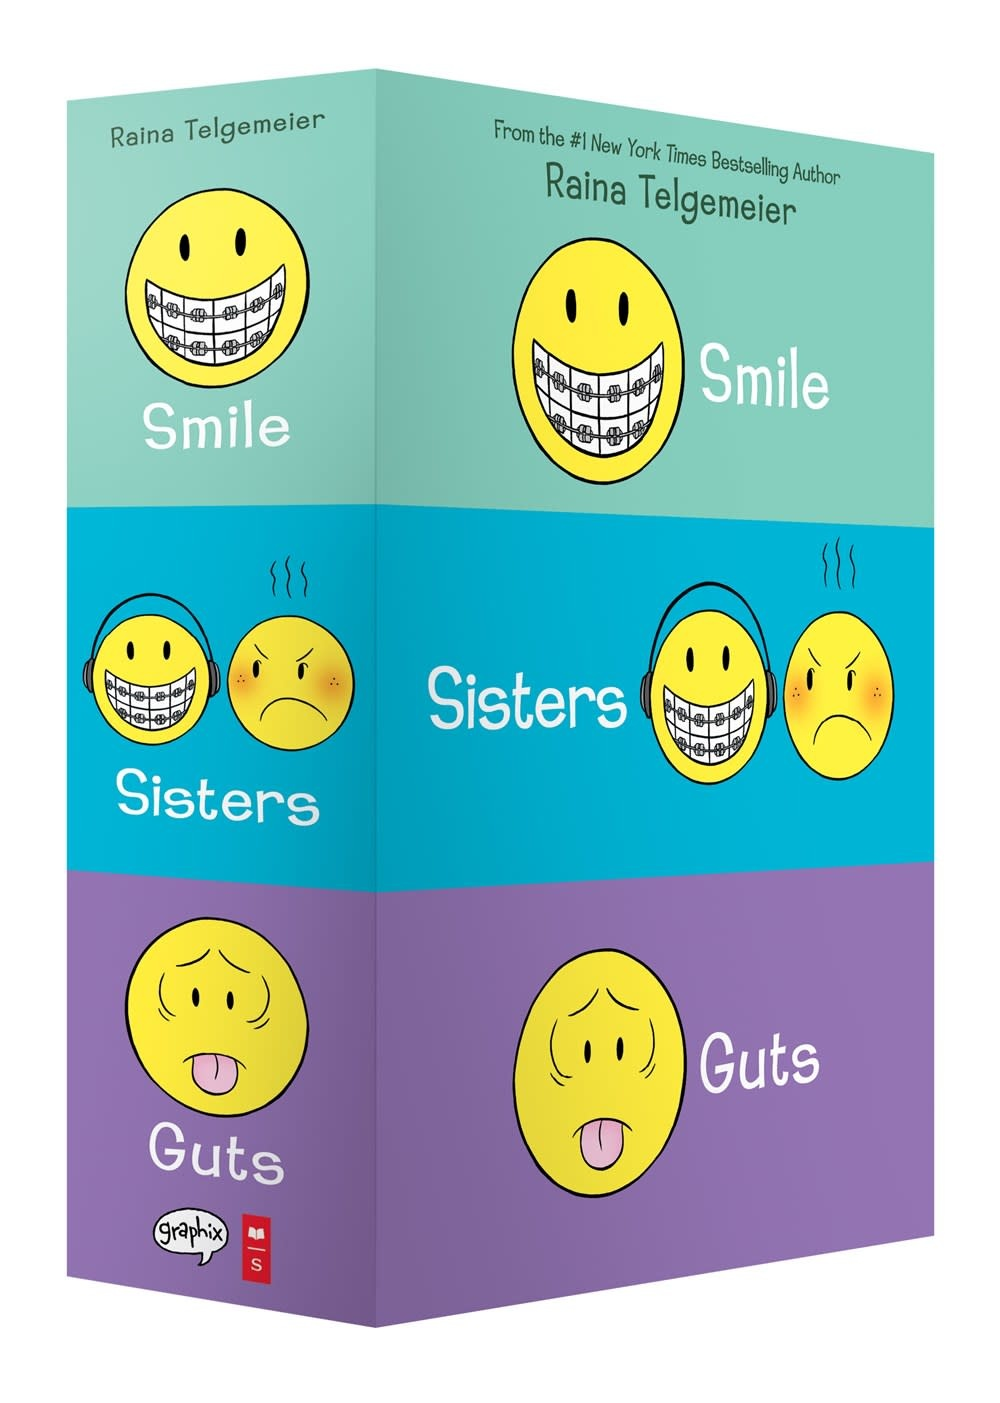 Graphix Smile, Sisters, and Guts: The Boxed Set (3 Books)